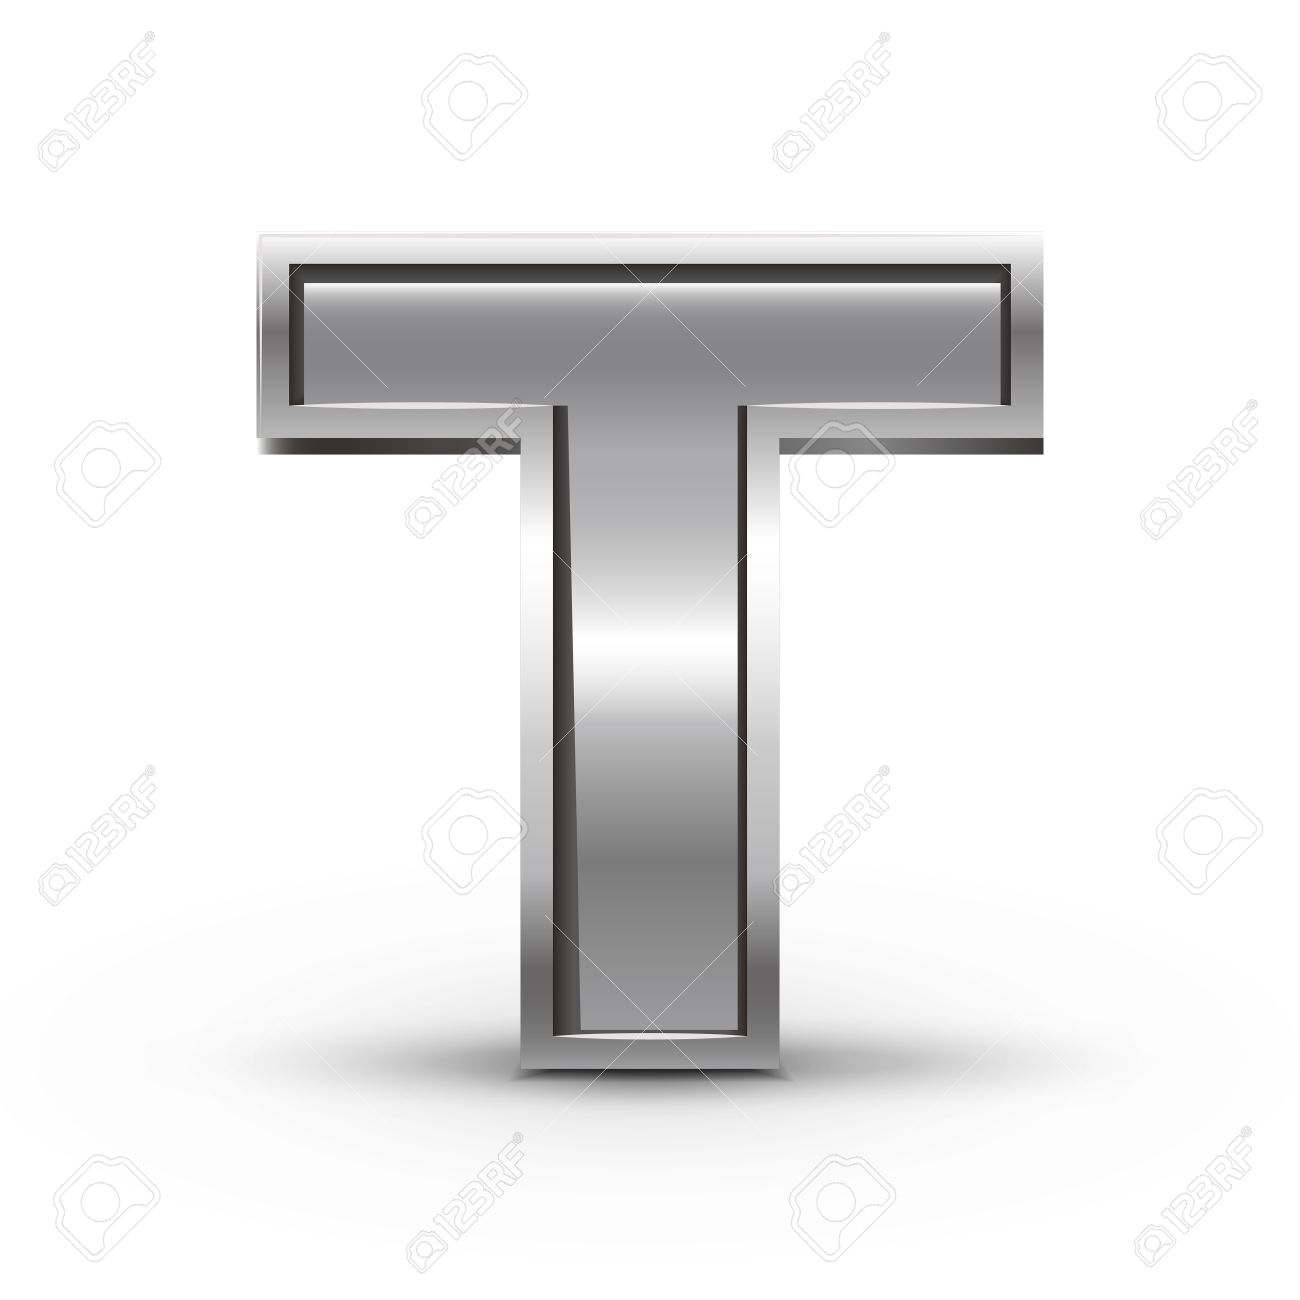 Metal Letter T 3D Metal Letter T Isolated On White Background Royalty Free